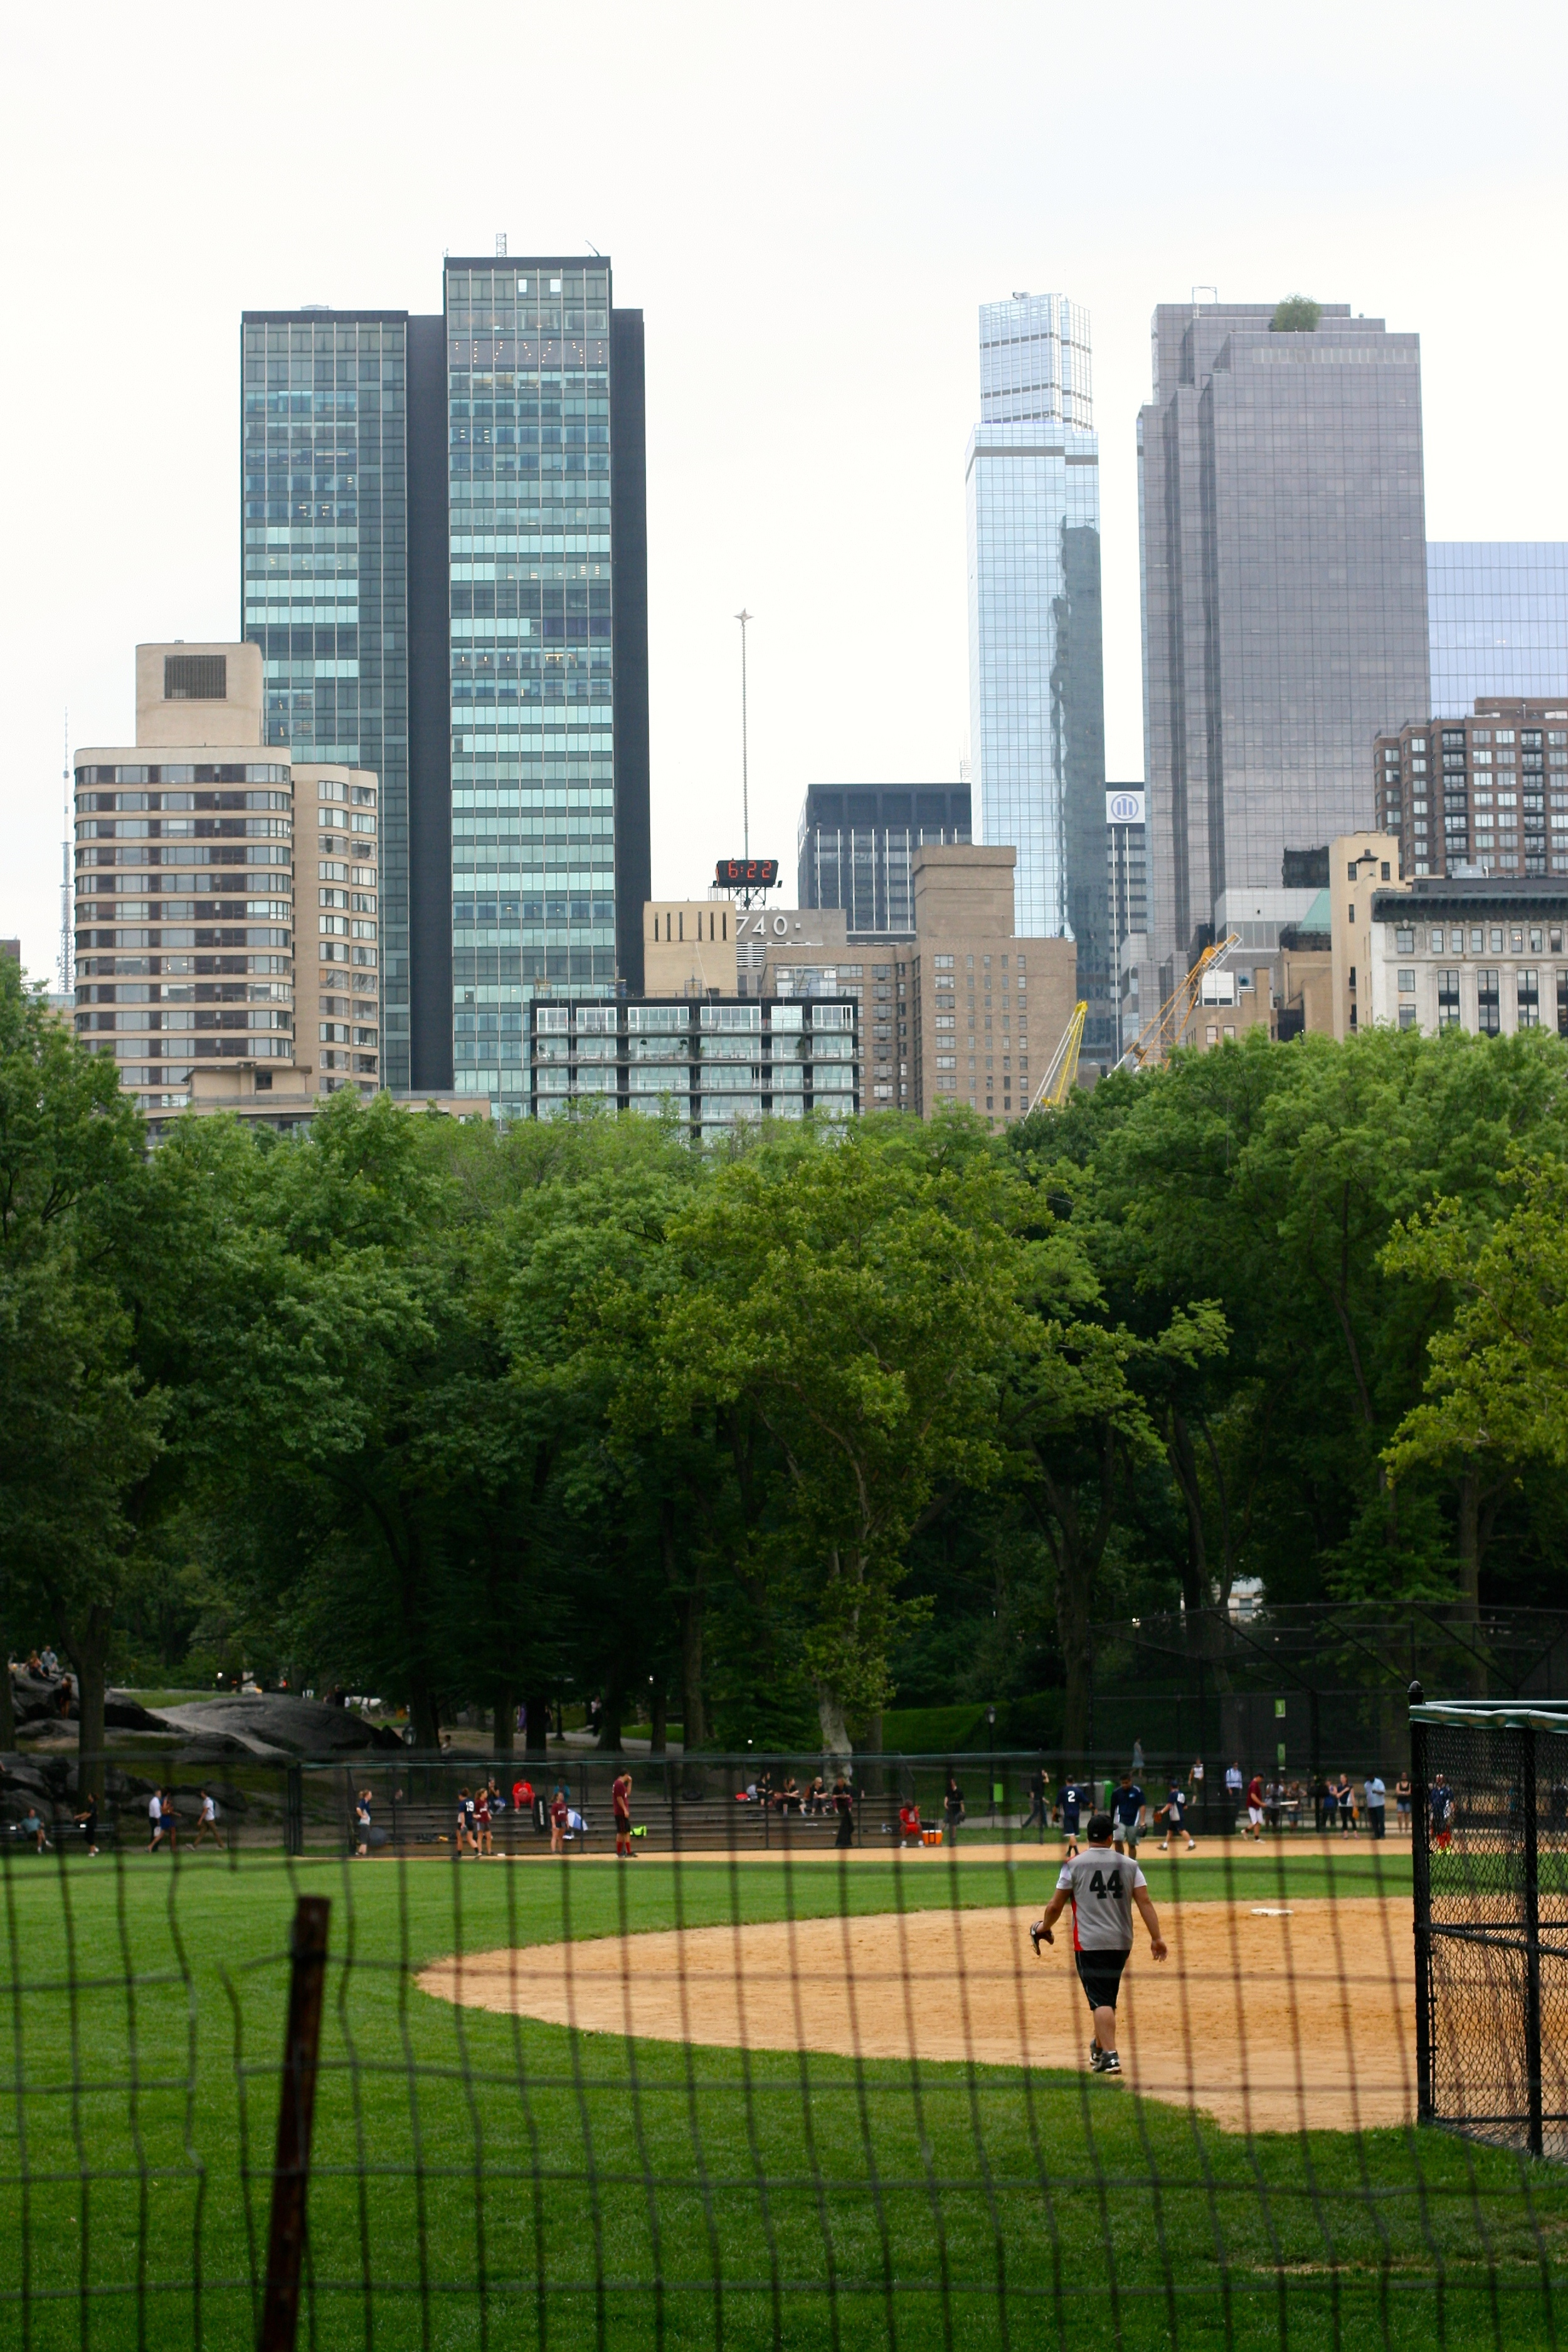 Probably the only place where you can watch a ball game and gaze at the cityscape ALL AT ONCE. Central Park, you rule.